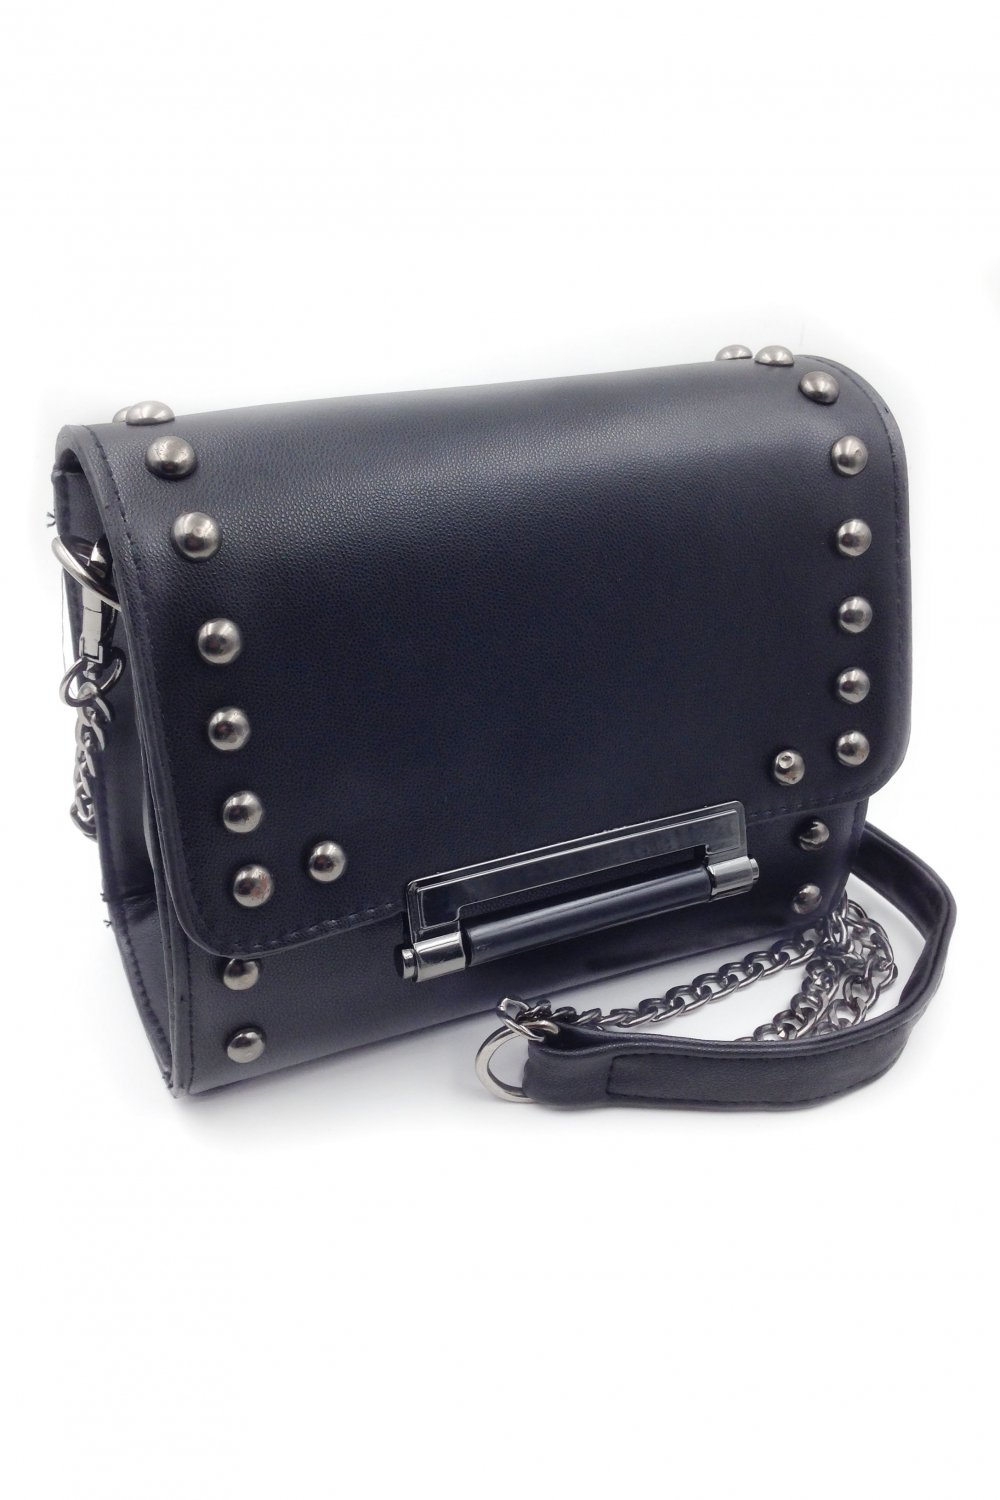 Cute small lady black purse